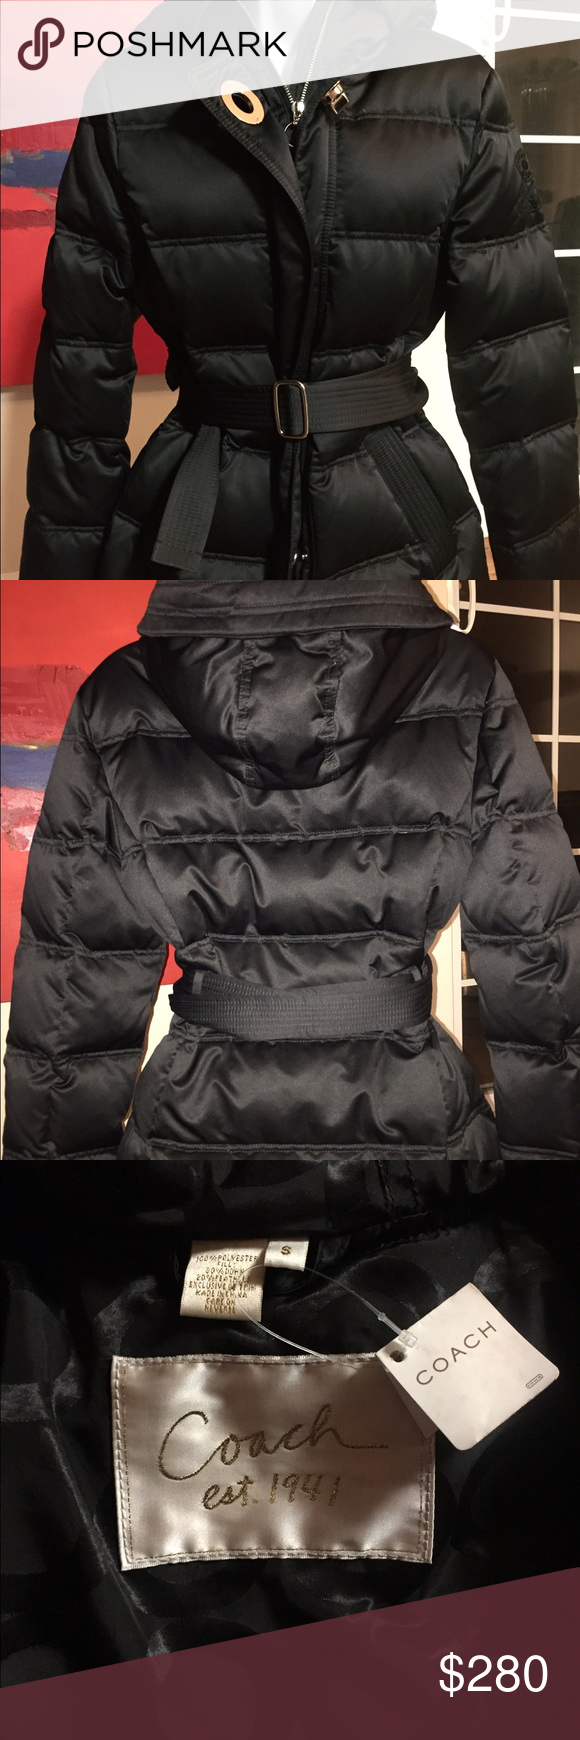 Coach 1941 Sold Collection Nwt Nofur Puffer Coach 1941 Jackets Coach Jacket [ 1740 x 580 Pixel ]